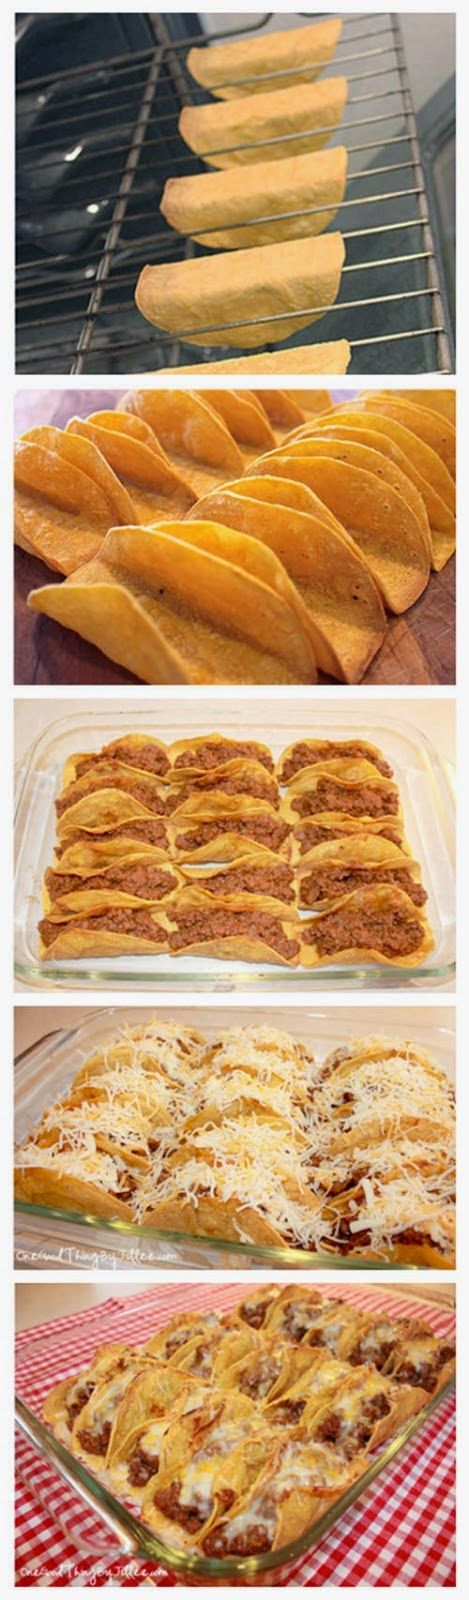 damp cloth or paper towel and microwave on High until steamed, about 30 seconds. Lay the tortillas on a clean work surface and coat both sides with cooking spray. Then carefully drape each tortilla over two bars of the oven rack. Bake at 375°F until crispy, 7 to 10 mins. Fill, bake 400' 10 mins